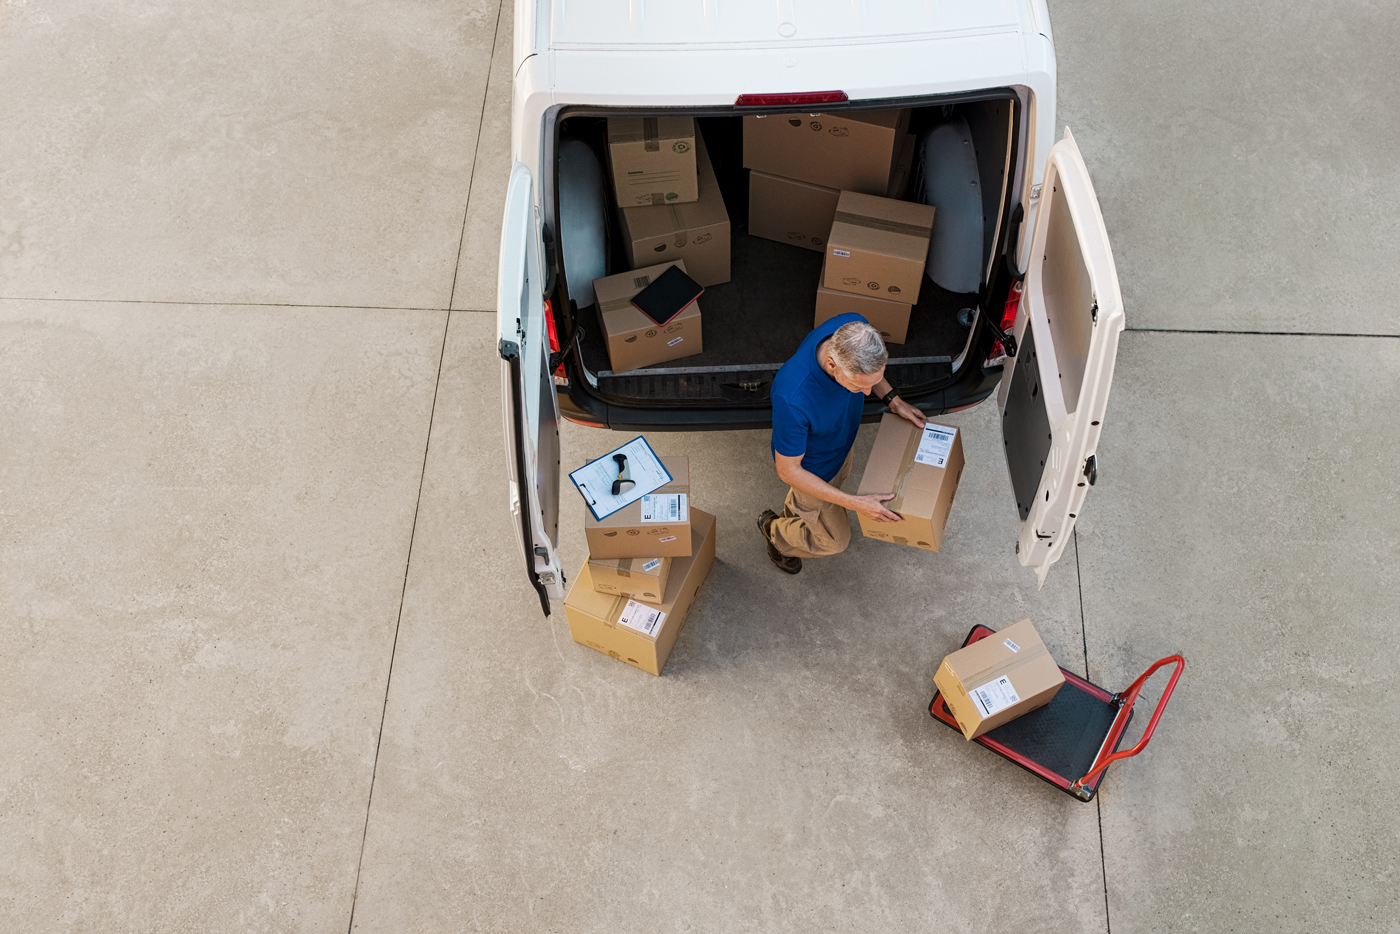 A delivery man taking a package from the back of a van